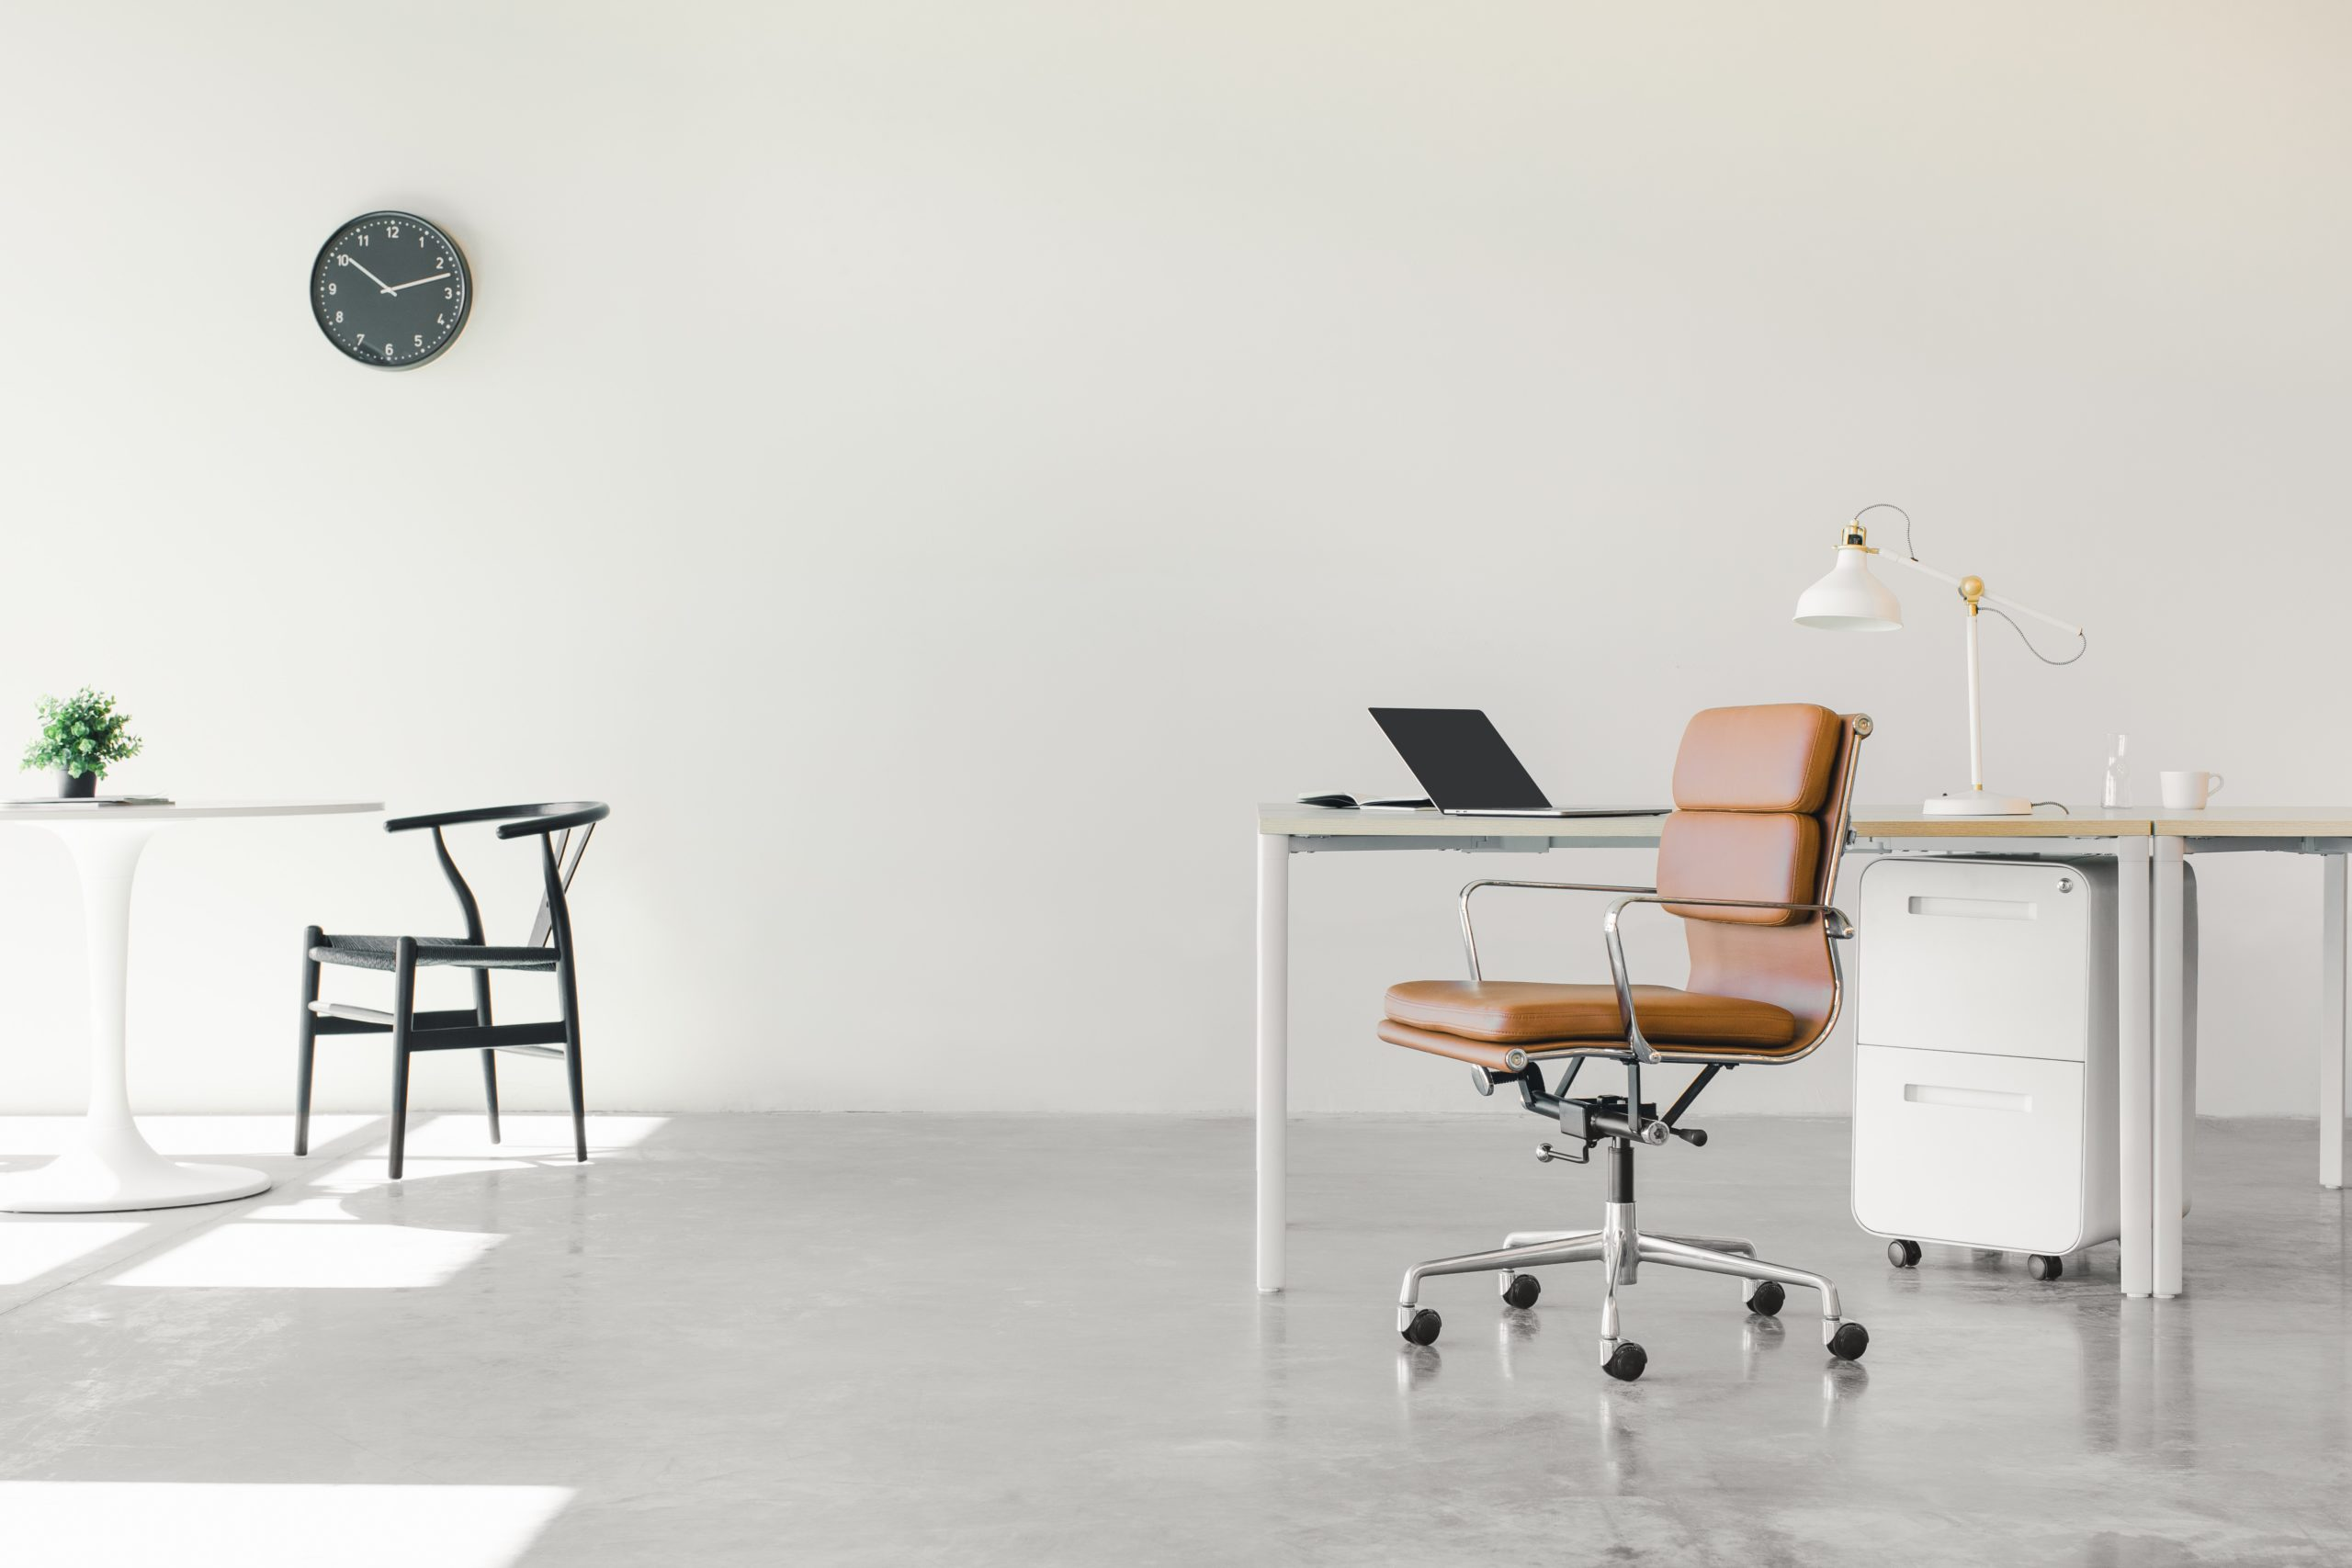 An open floor plan office space with a minimalist setup of chairs and desks.